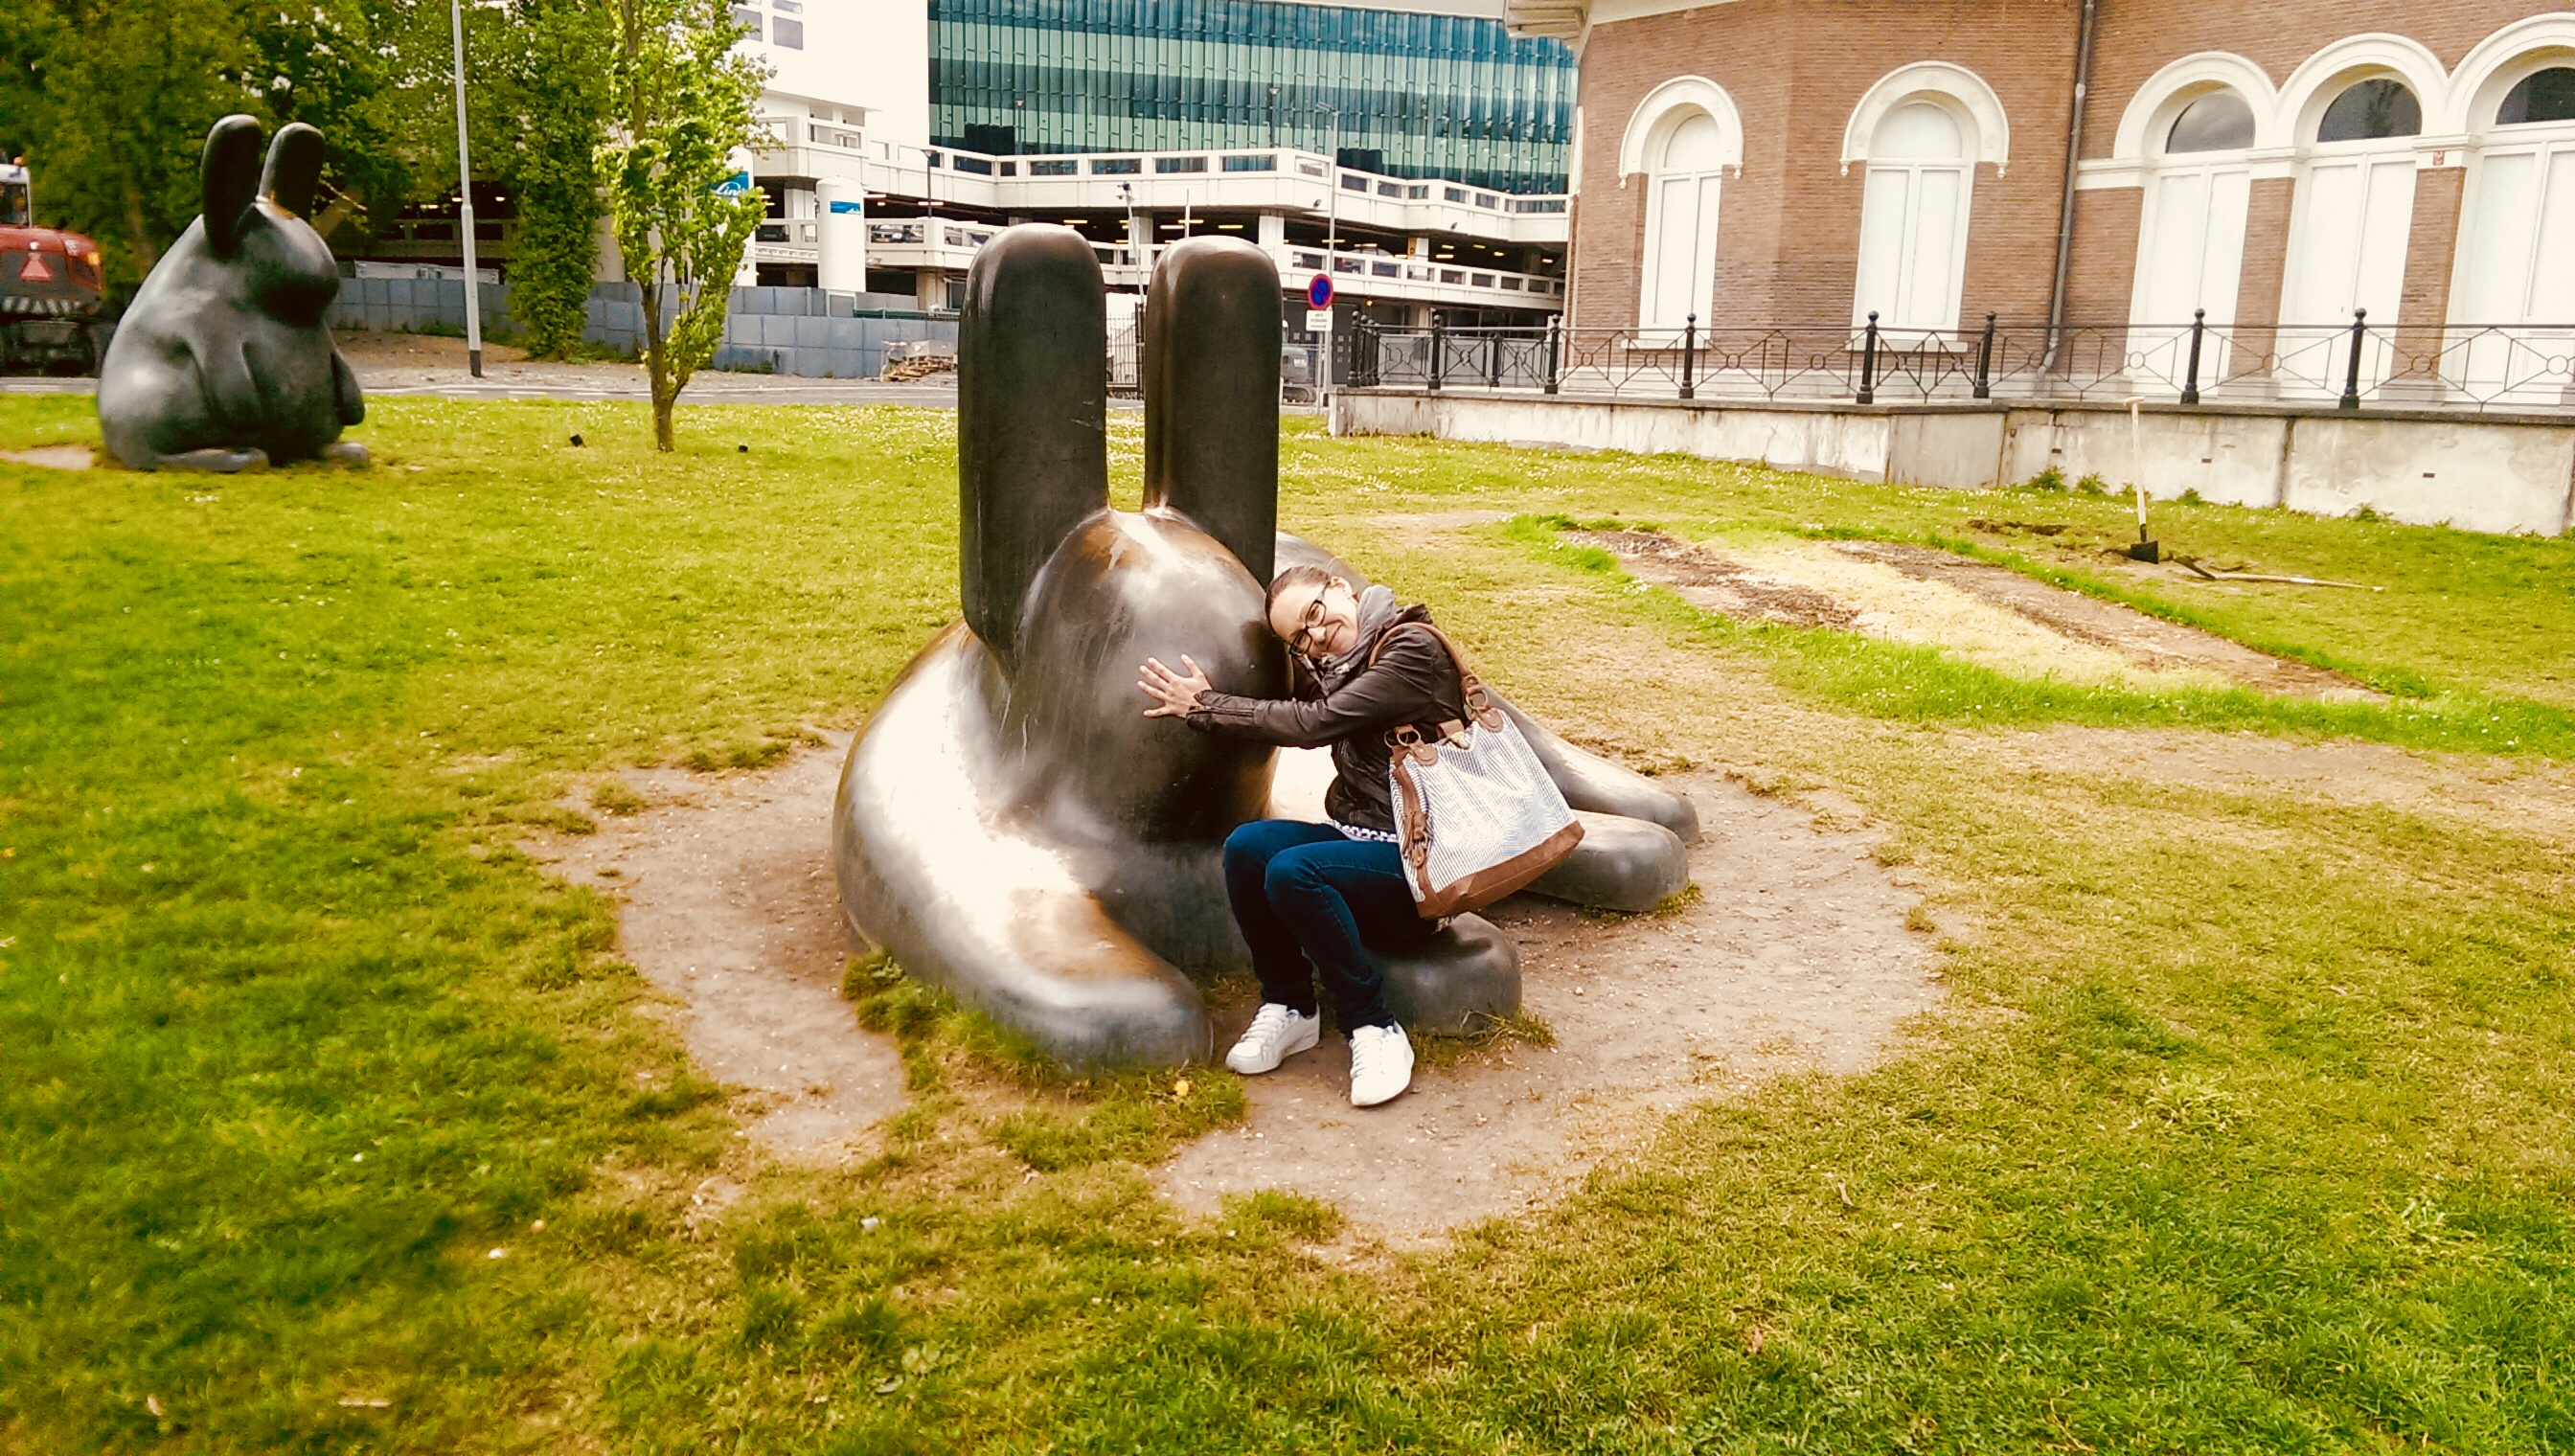 Kunsthal park in Rotterdam